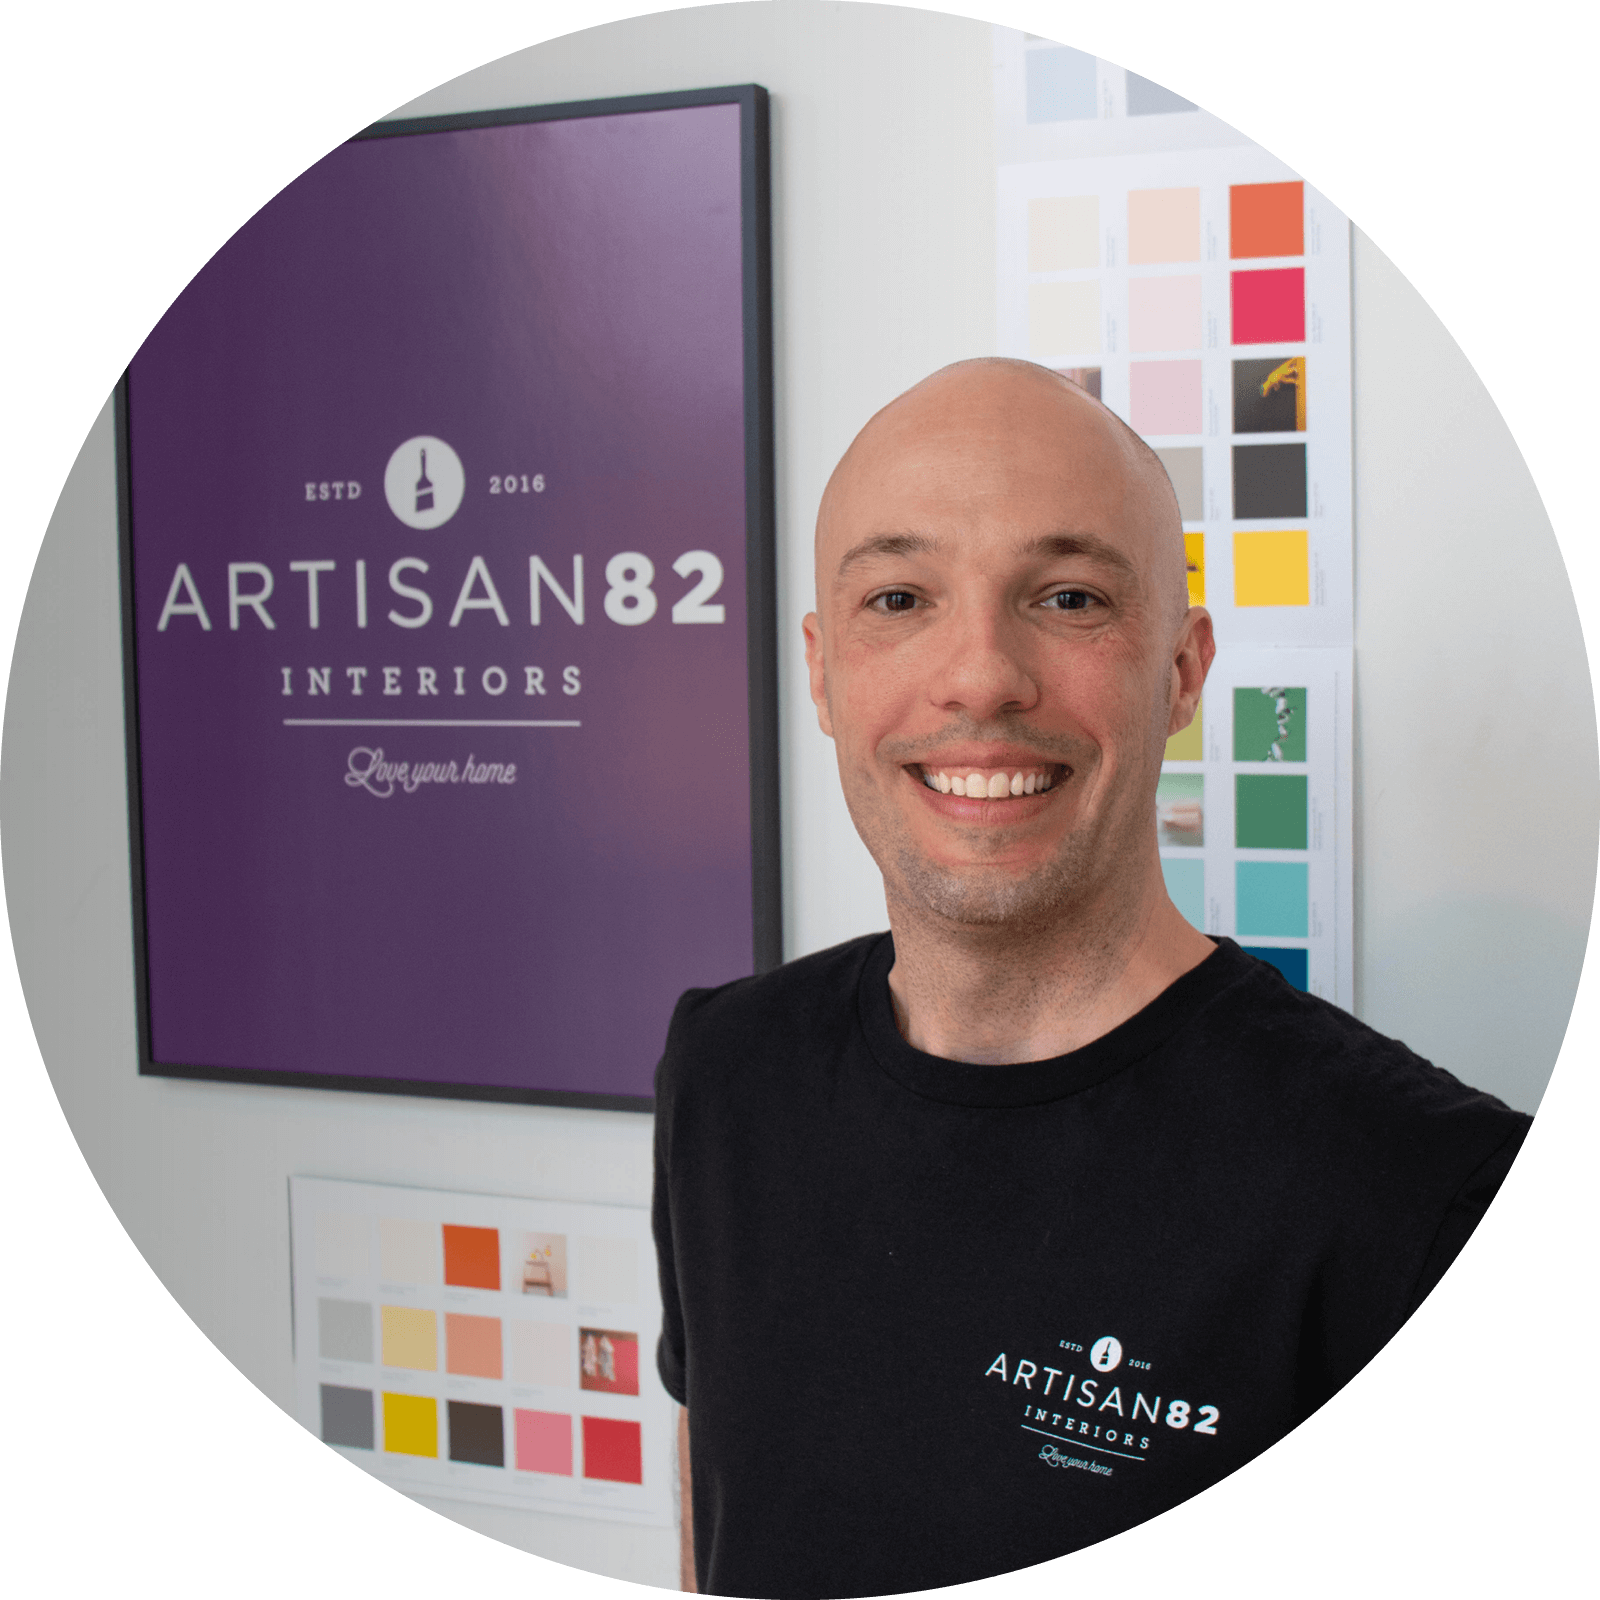 Artisan & Entrepreneur - The son of a business owner and professional painter, Dan always knew he wanted to start his own business. His painting experience and passion for craftsmanship combined with his love of working with people led him to start Artisan82 (formerly Smartpaint) in 2016. Artisan82 is the realization of his boyhood dream, and Dan finds his work and his role as entrepreneur incredibly rewarding. Dan's long-term aspirations include product development, launching educational platforms, and franchising. His vision is to foster a global community of like-minded professional and amateur painters by 2030.